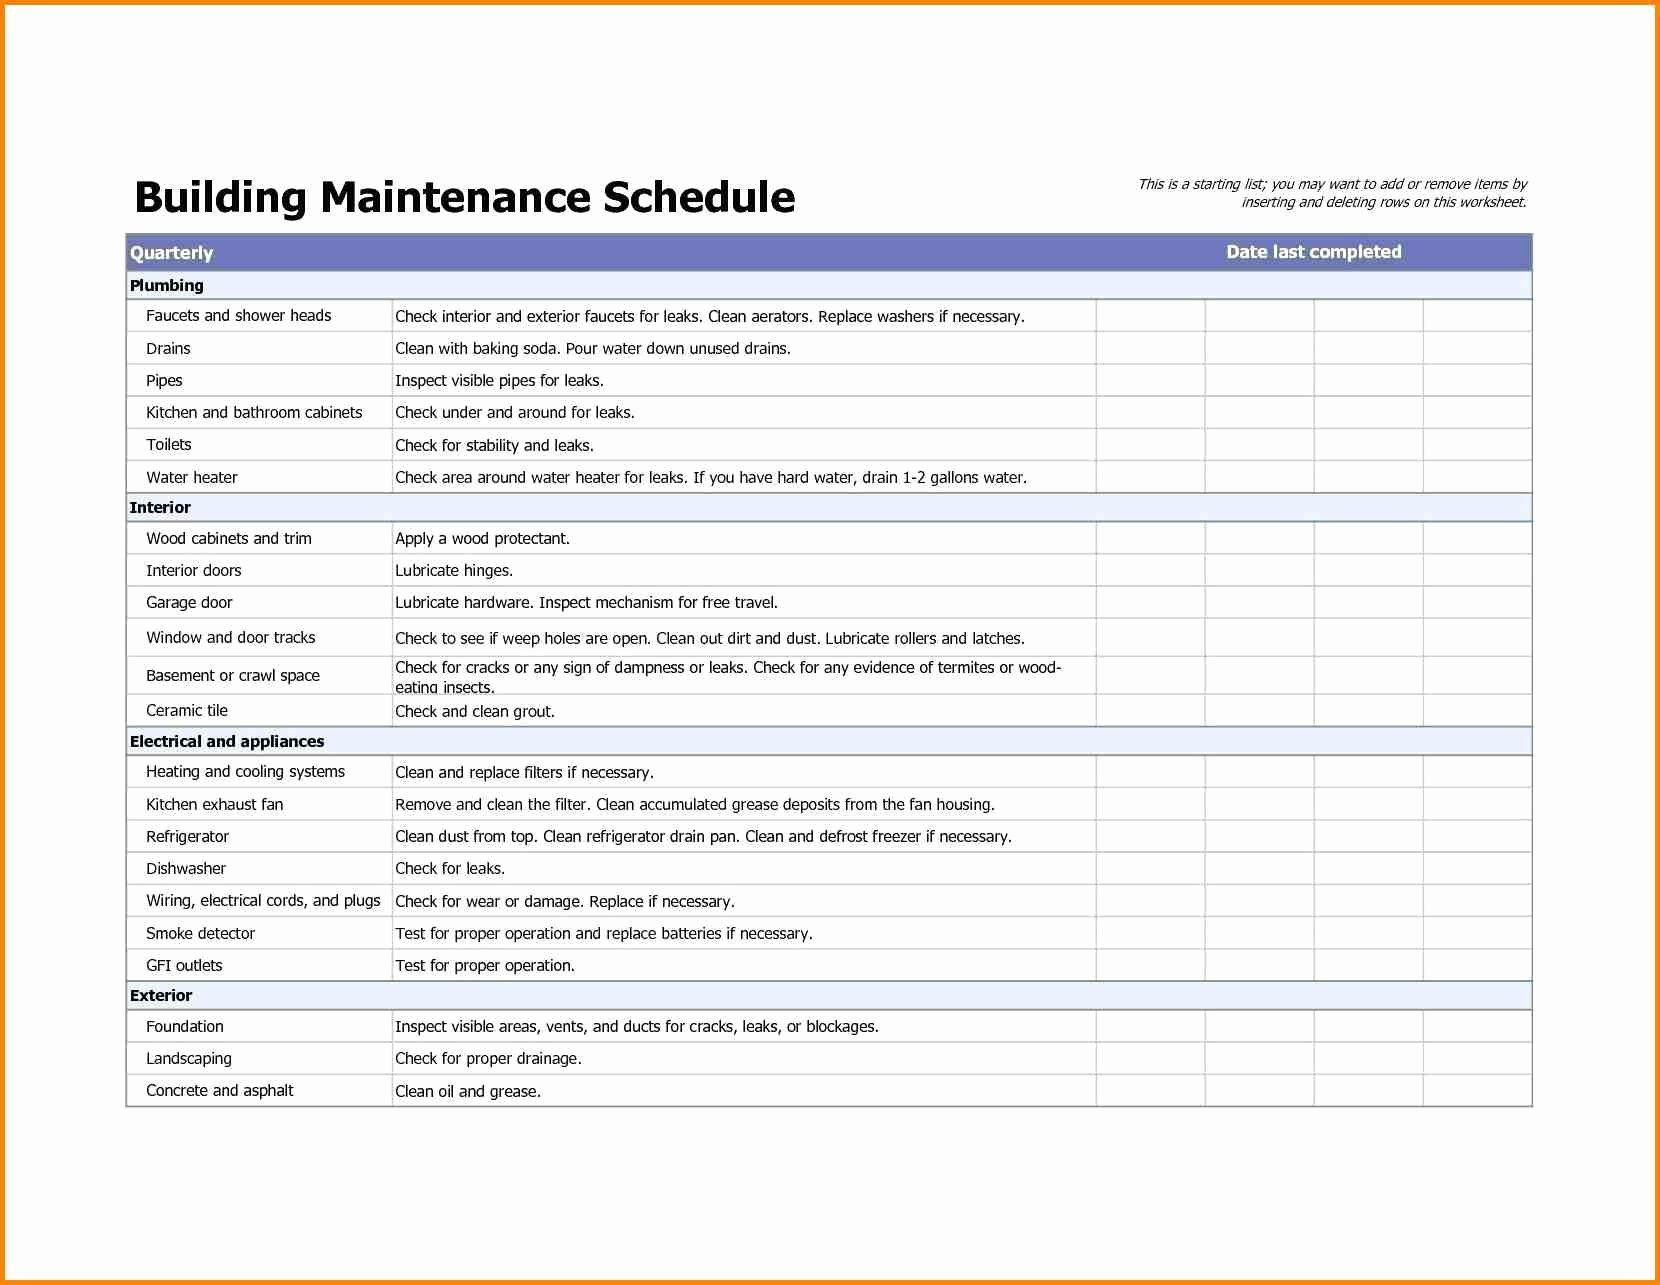 Facility Maintenance Schedule Excel Template Luxury Building